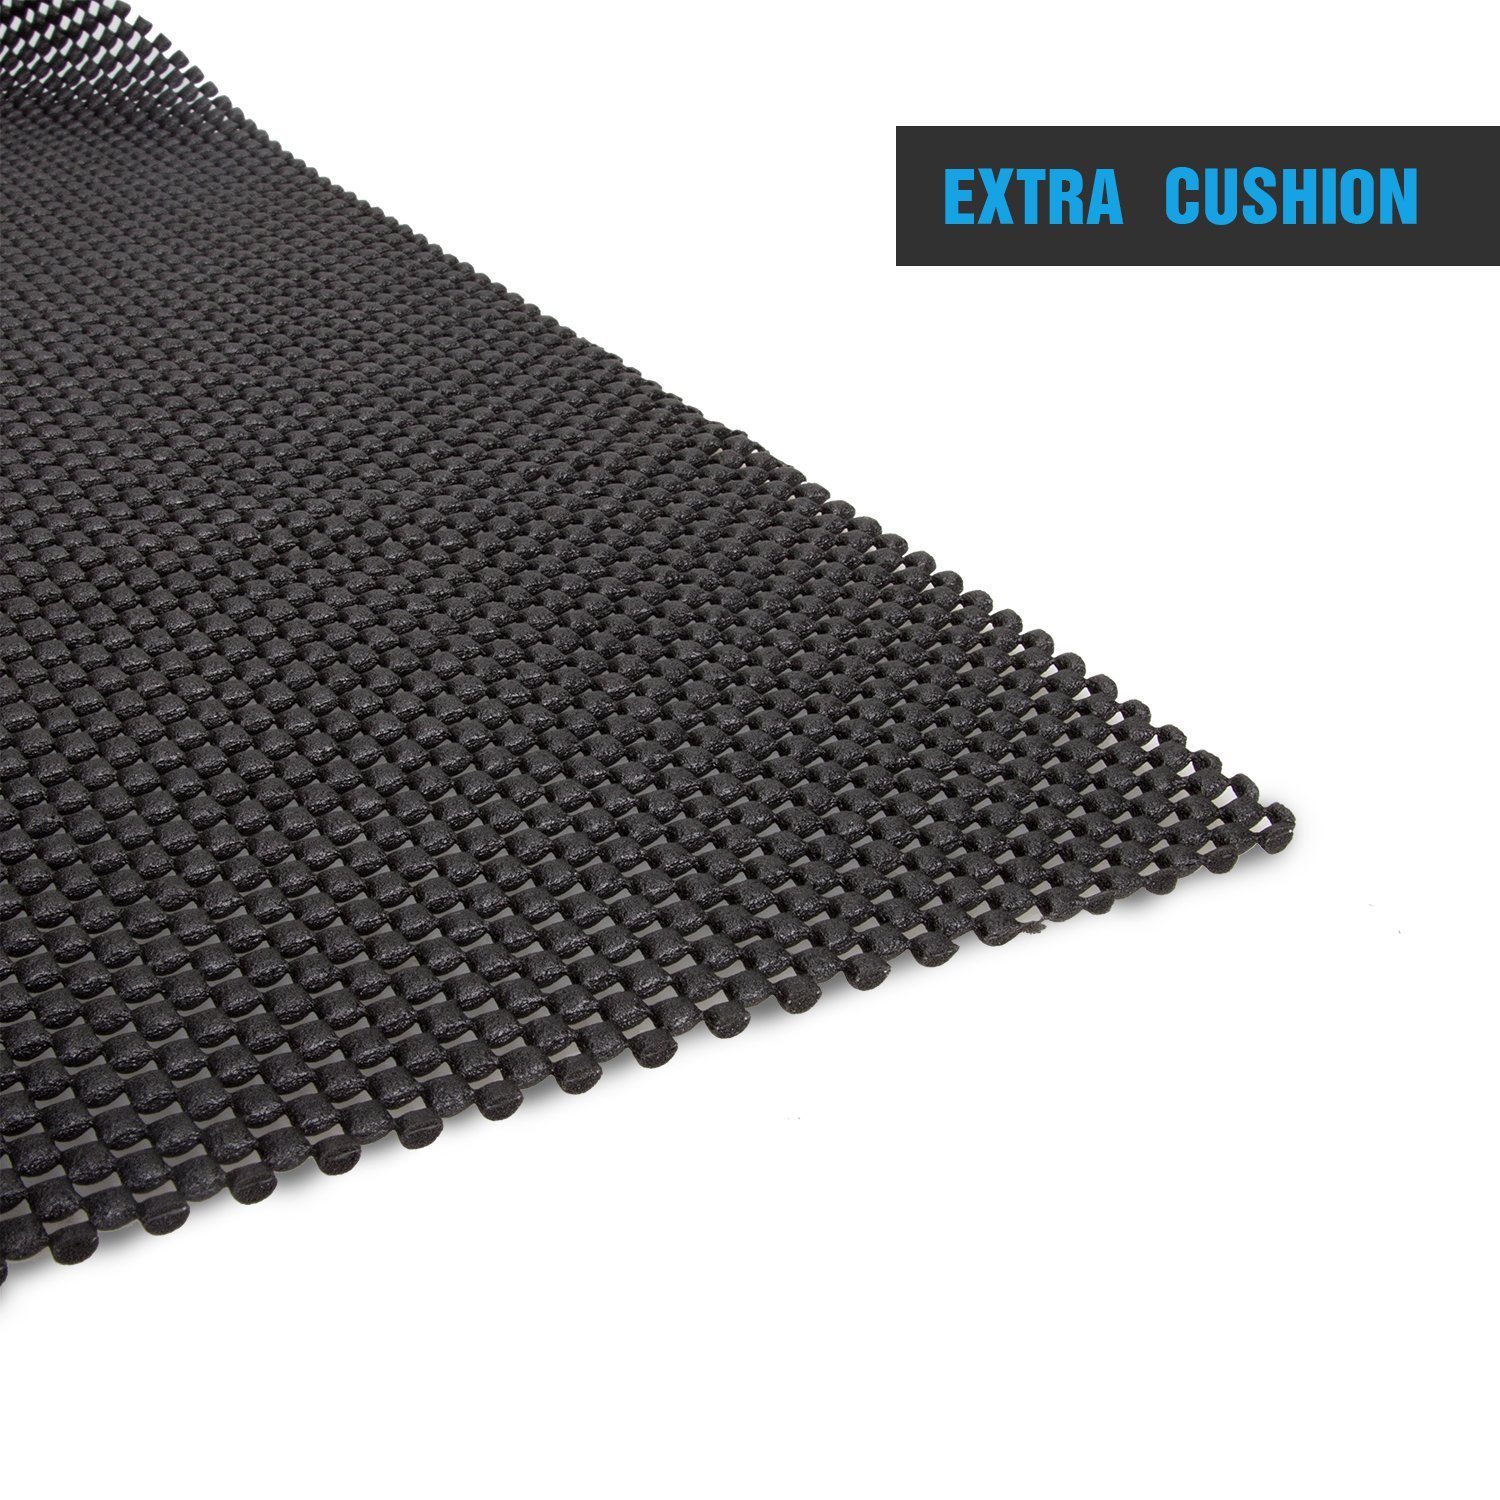 Siivton CAR ROOF Protective MAT Roof Mat Roof Rack Pad Non-Slip for Car Roof Storage Bags sivton Non-slip Roof Mat